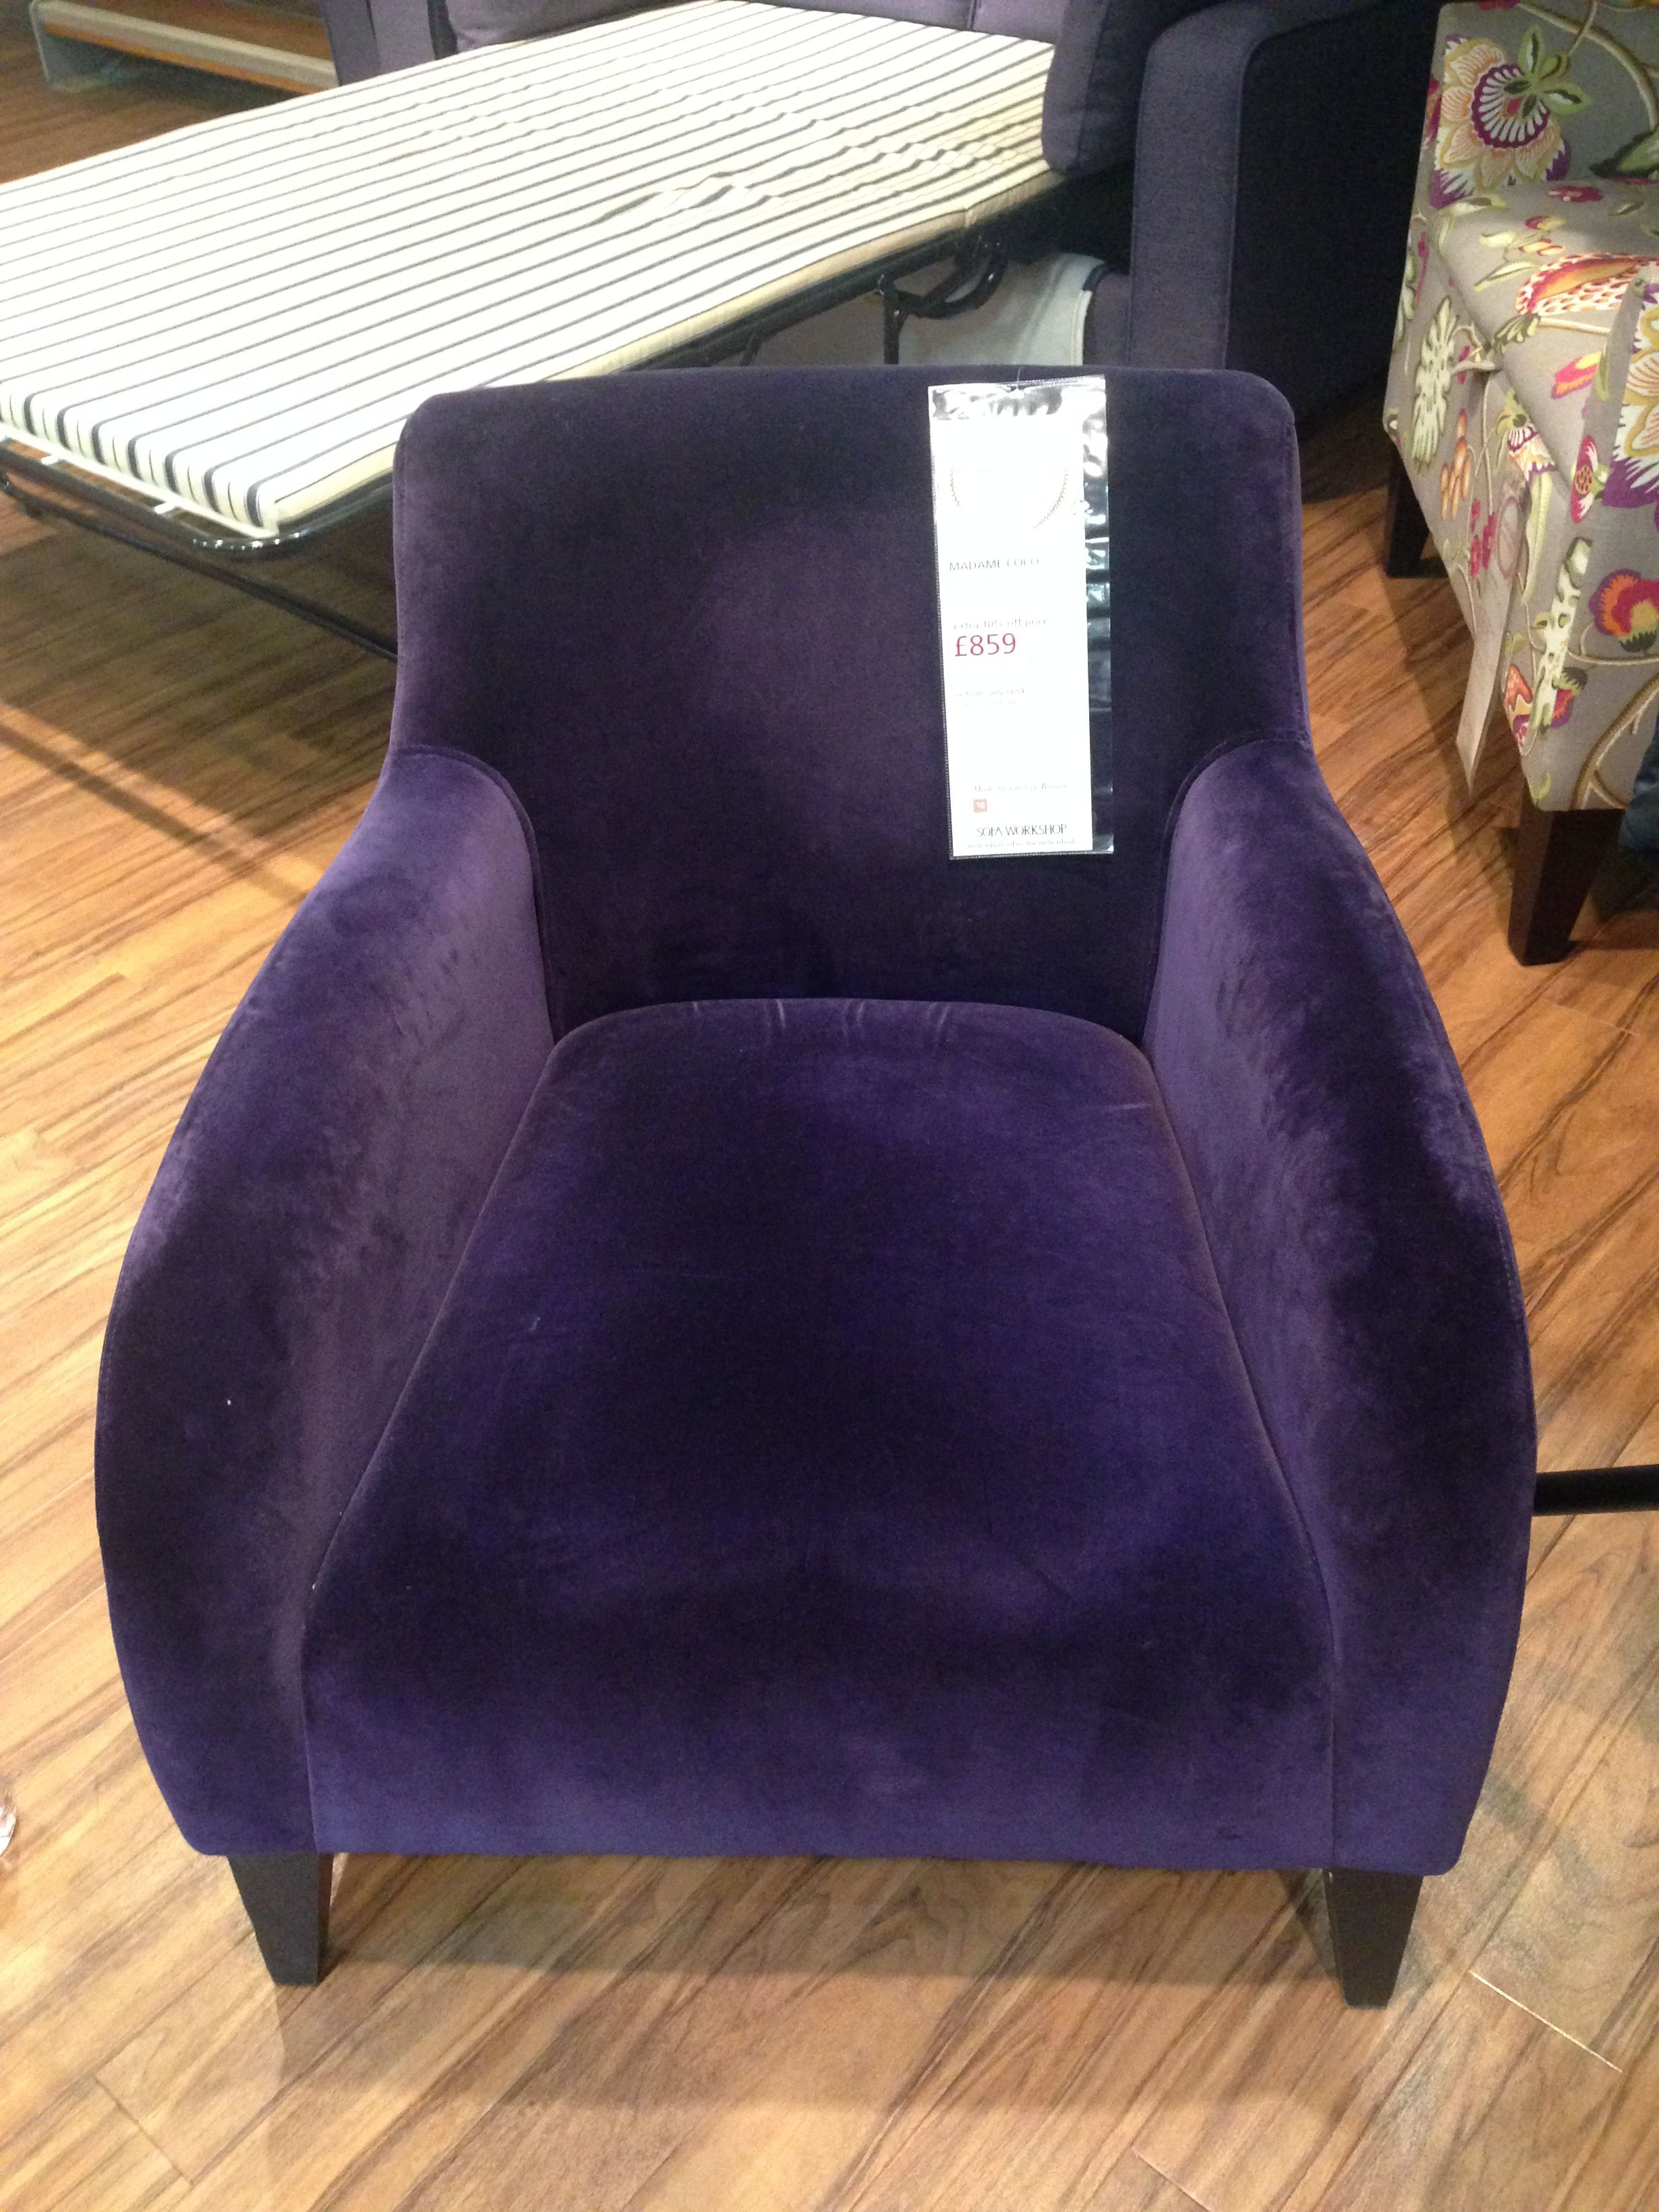 Madame Coco Chair in Seduction